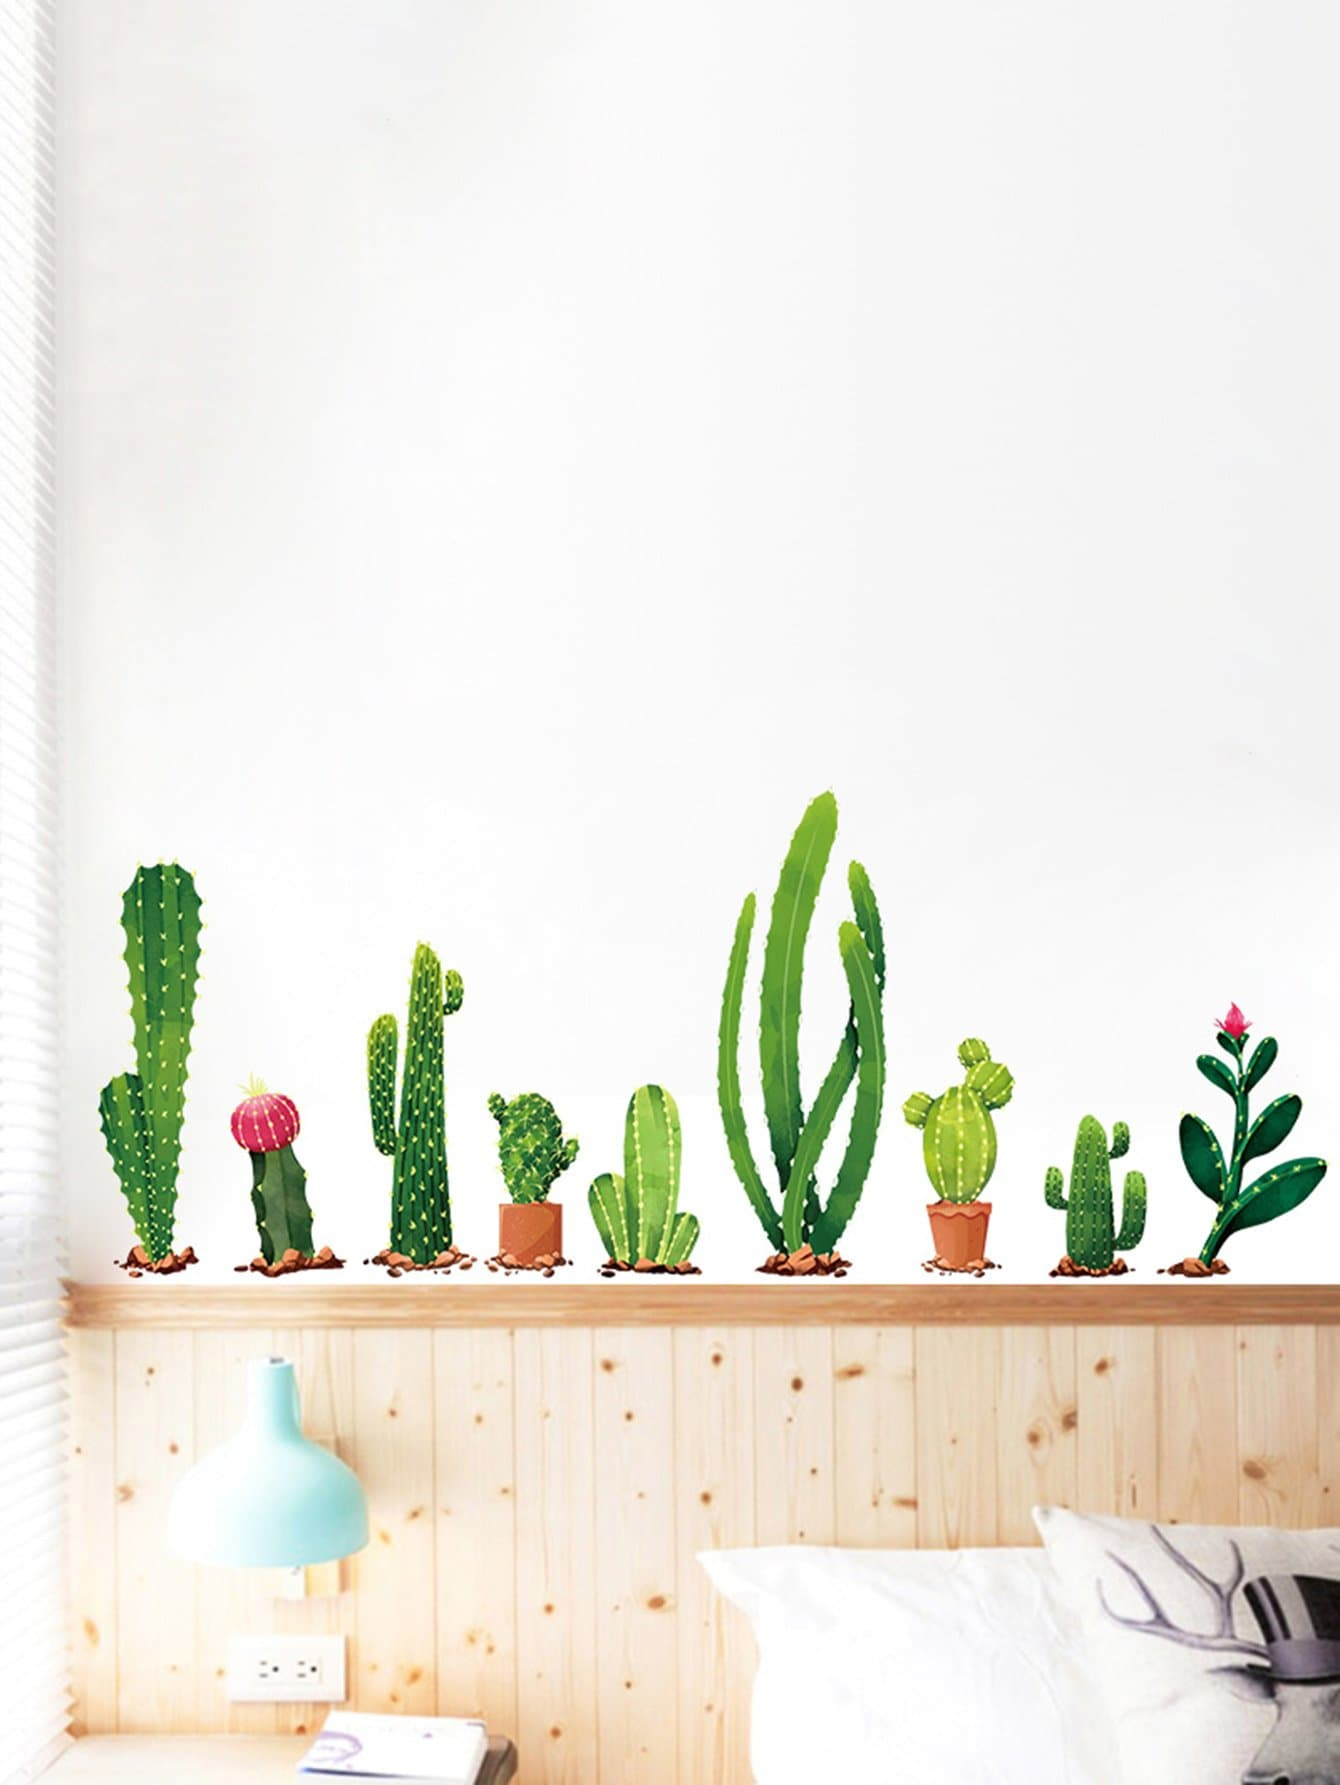 Adhesivo Decorativo Para Paredes Adhesivo Decorativo De Pared De Cactus Spanish Shein